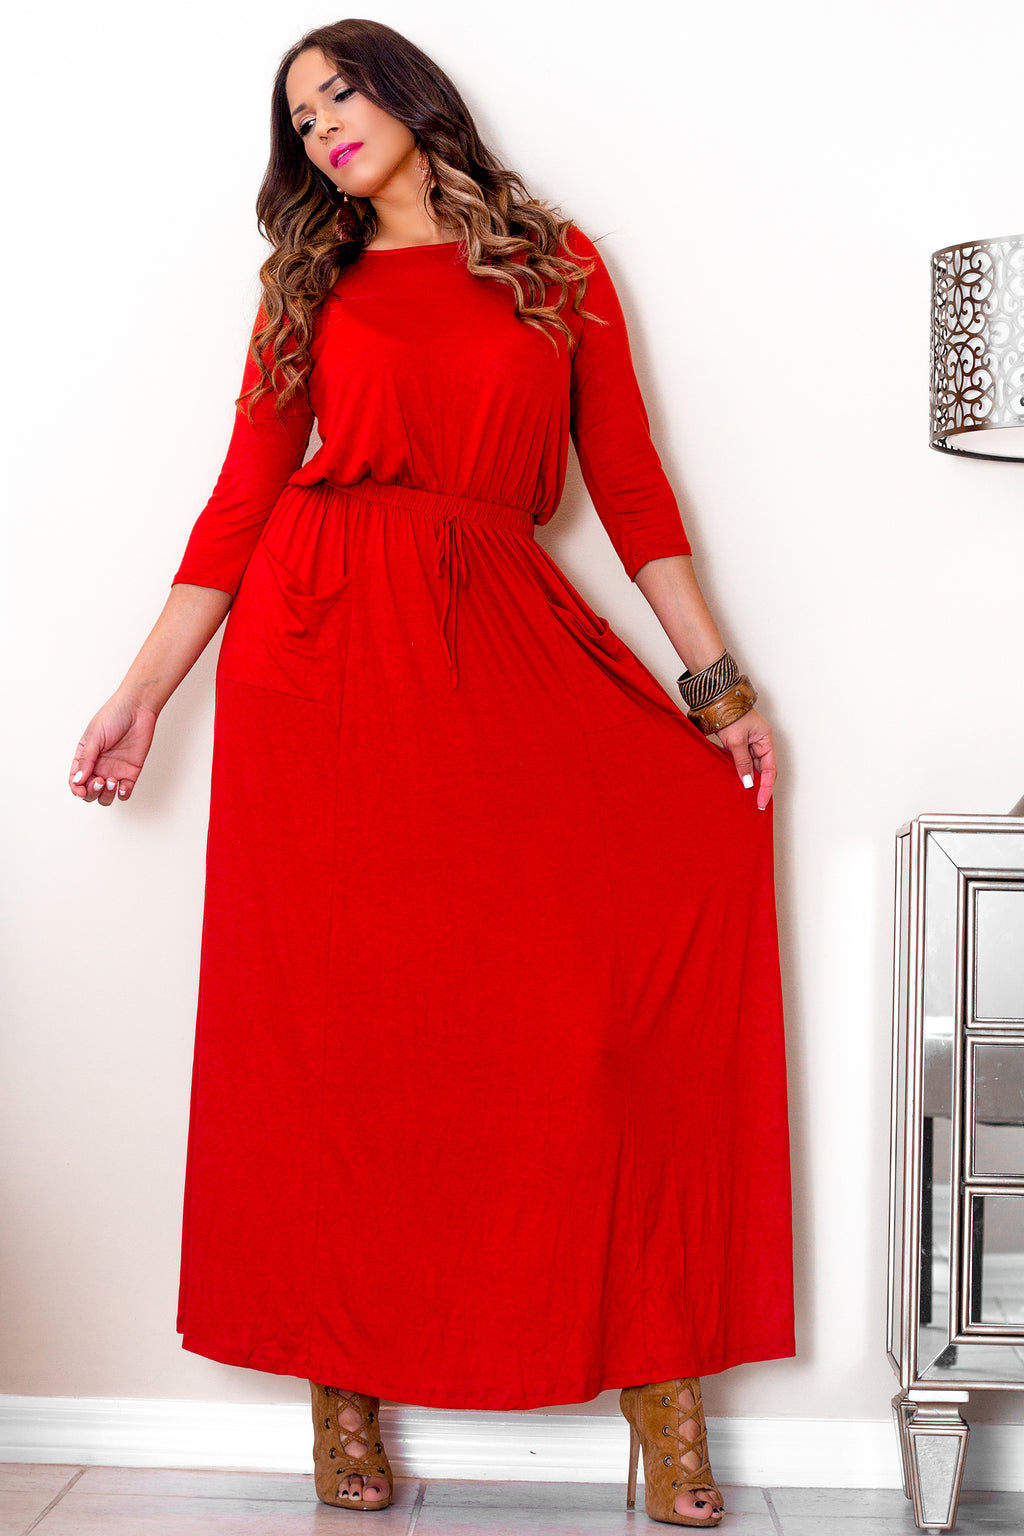 Dalinda Casual Rust Quarter Sleeves Maxi Dress - MY SEXY STYLES